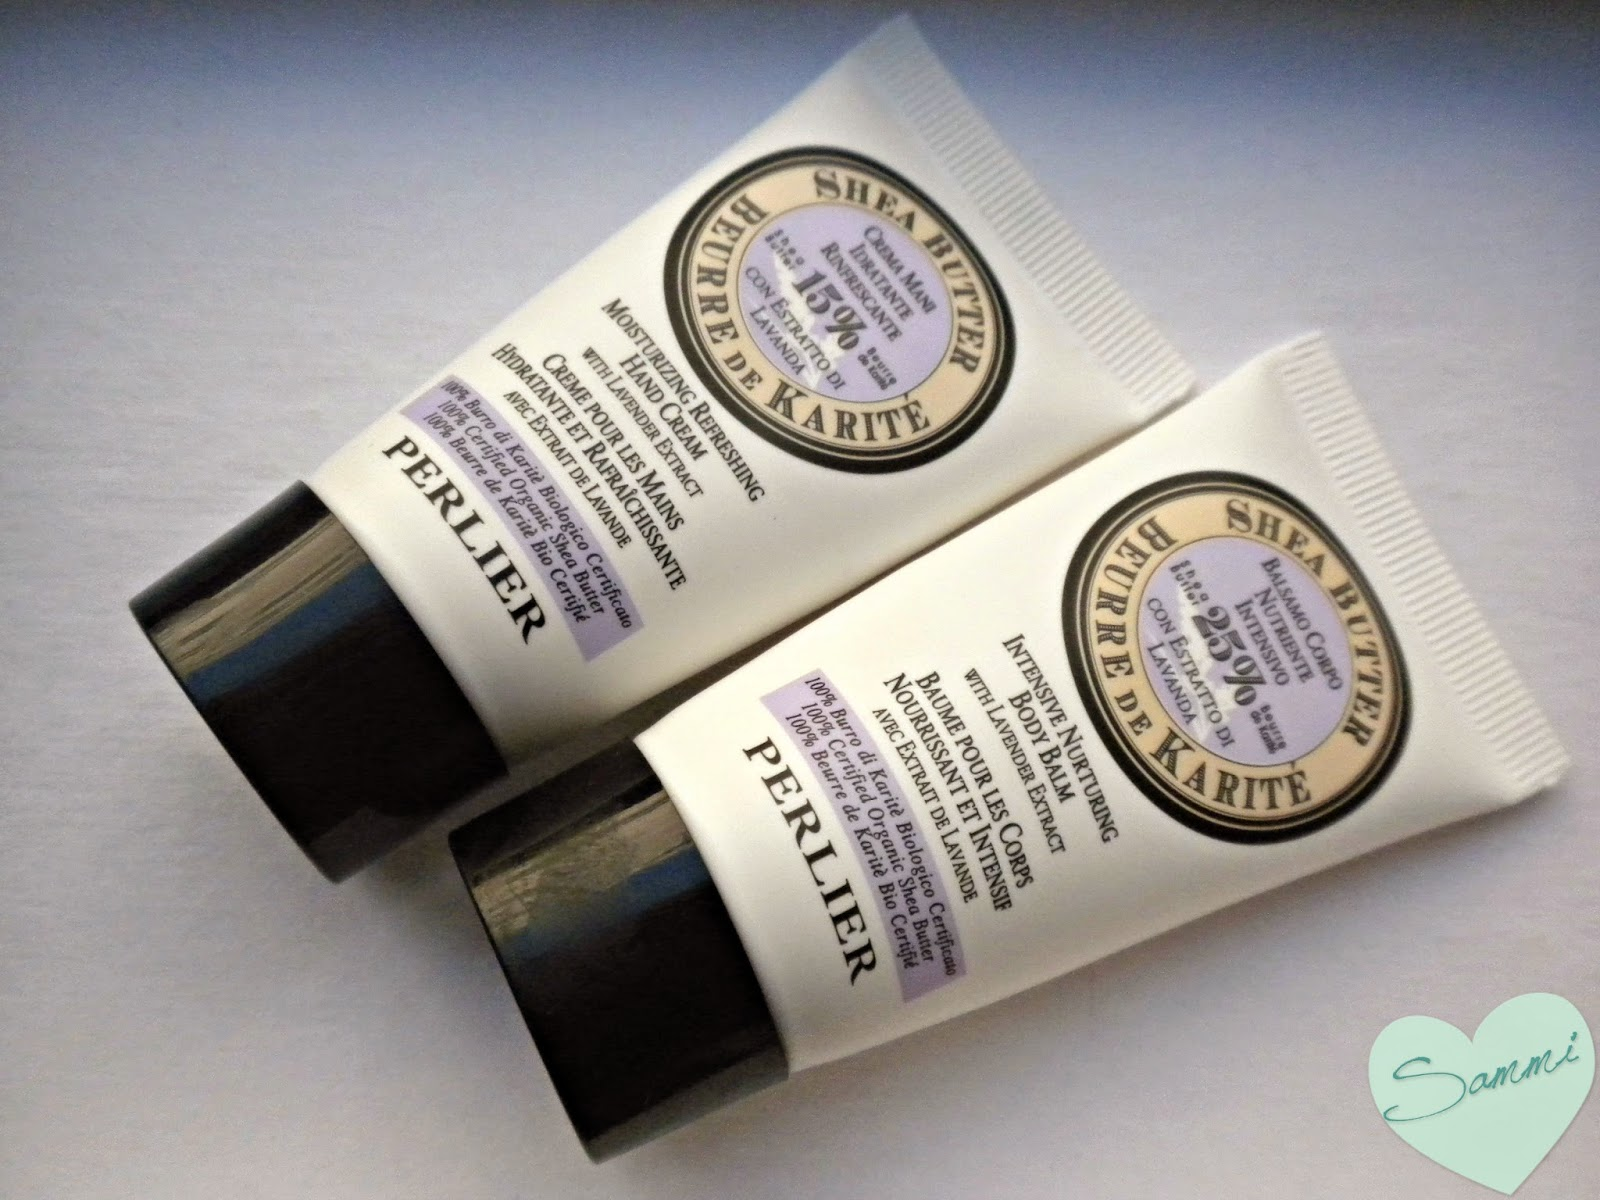 PERLIER Shea Butter Lavender Hand Cream ($21 for 3.3oz) and Body Balm ($30 for 6.7oz)